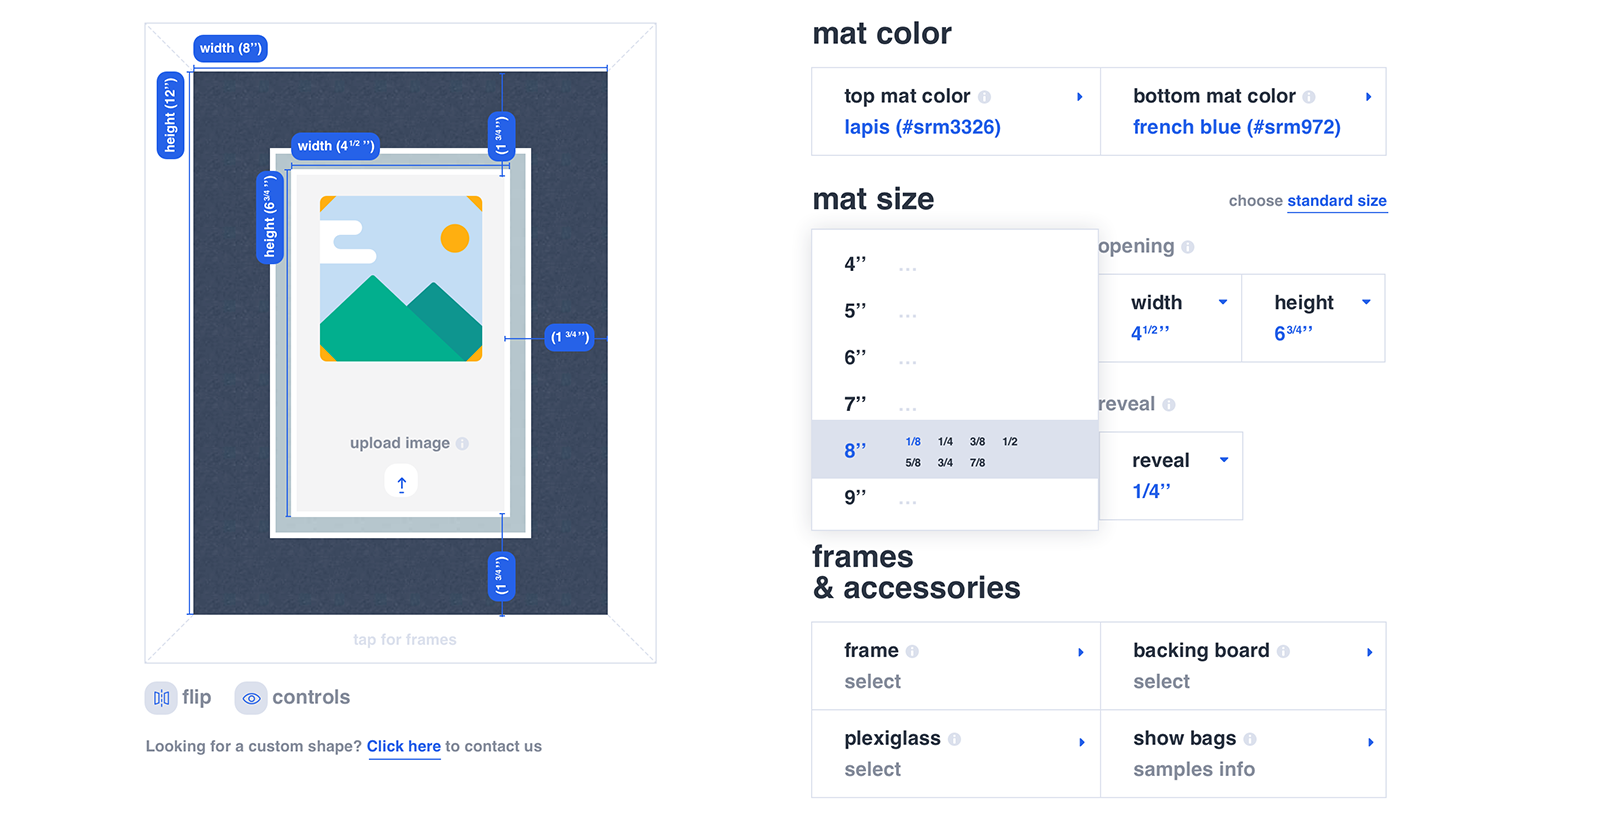 User can select mat color, size, frames and accessories for an ultimate UX